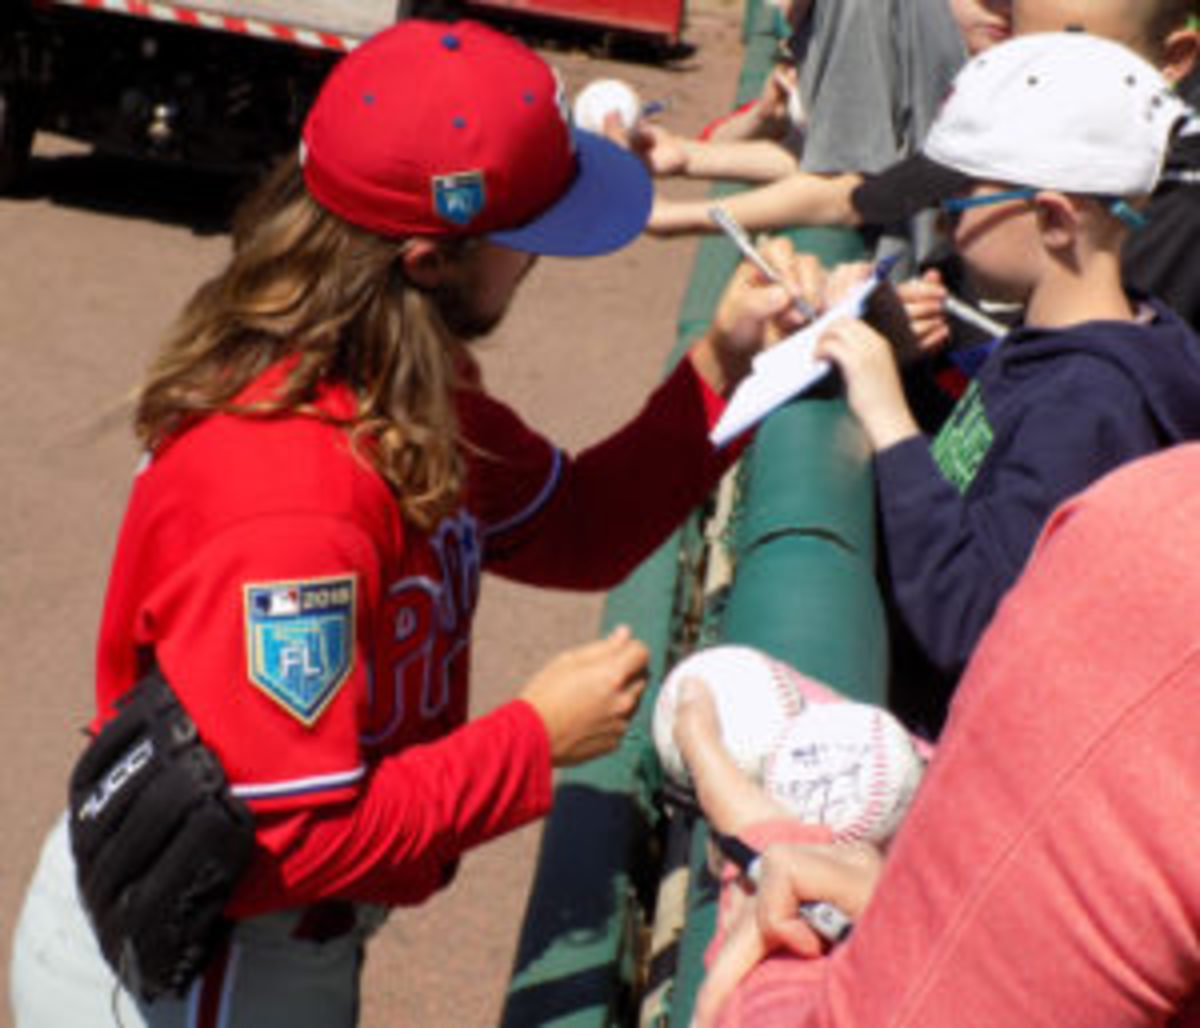 A Philadelphia Phillies player signs an autograph for a young fan at a Spring Training game. Players usually sign autographs along the fences near the dugout. (Barry Blair photos)